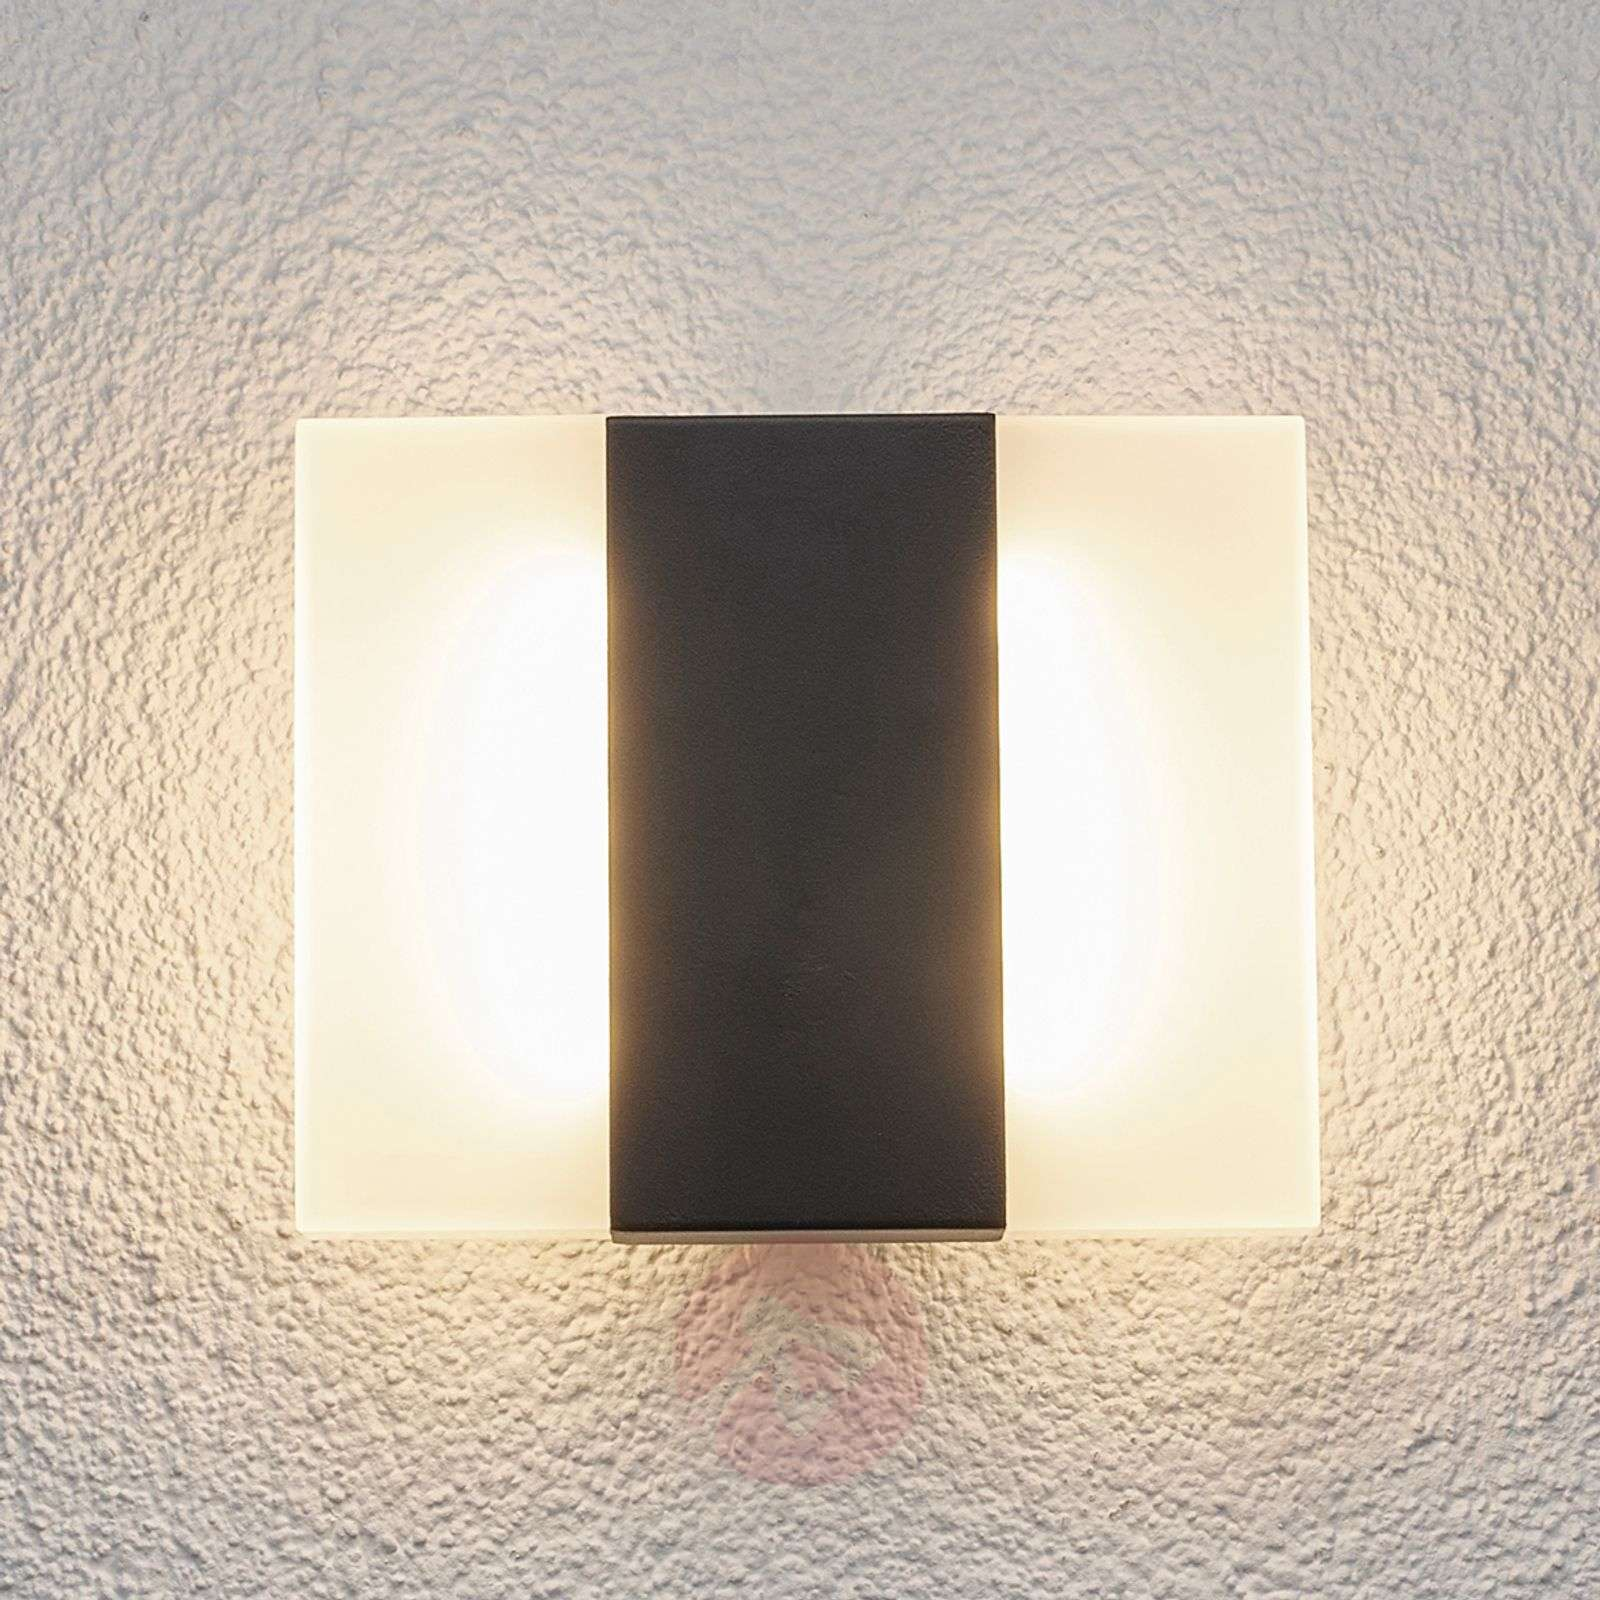 Brje led outdoor wall light in a square shape lights brje led outdoor wall light in a square shape 9647003 01 aloadofball Gallery